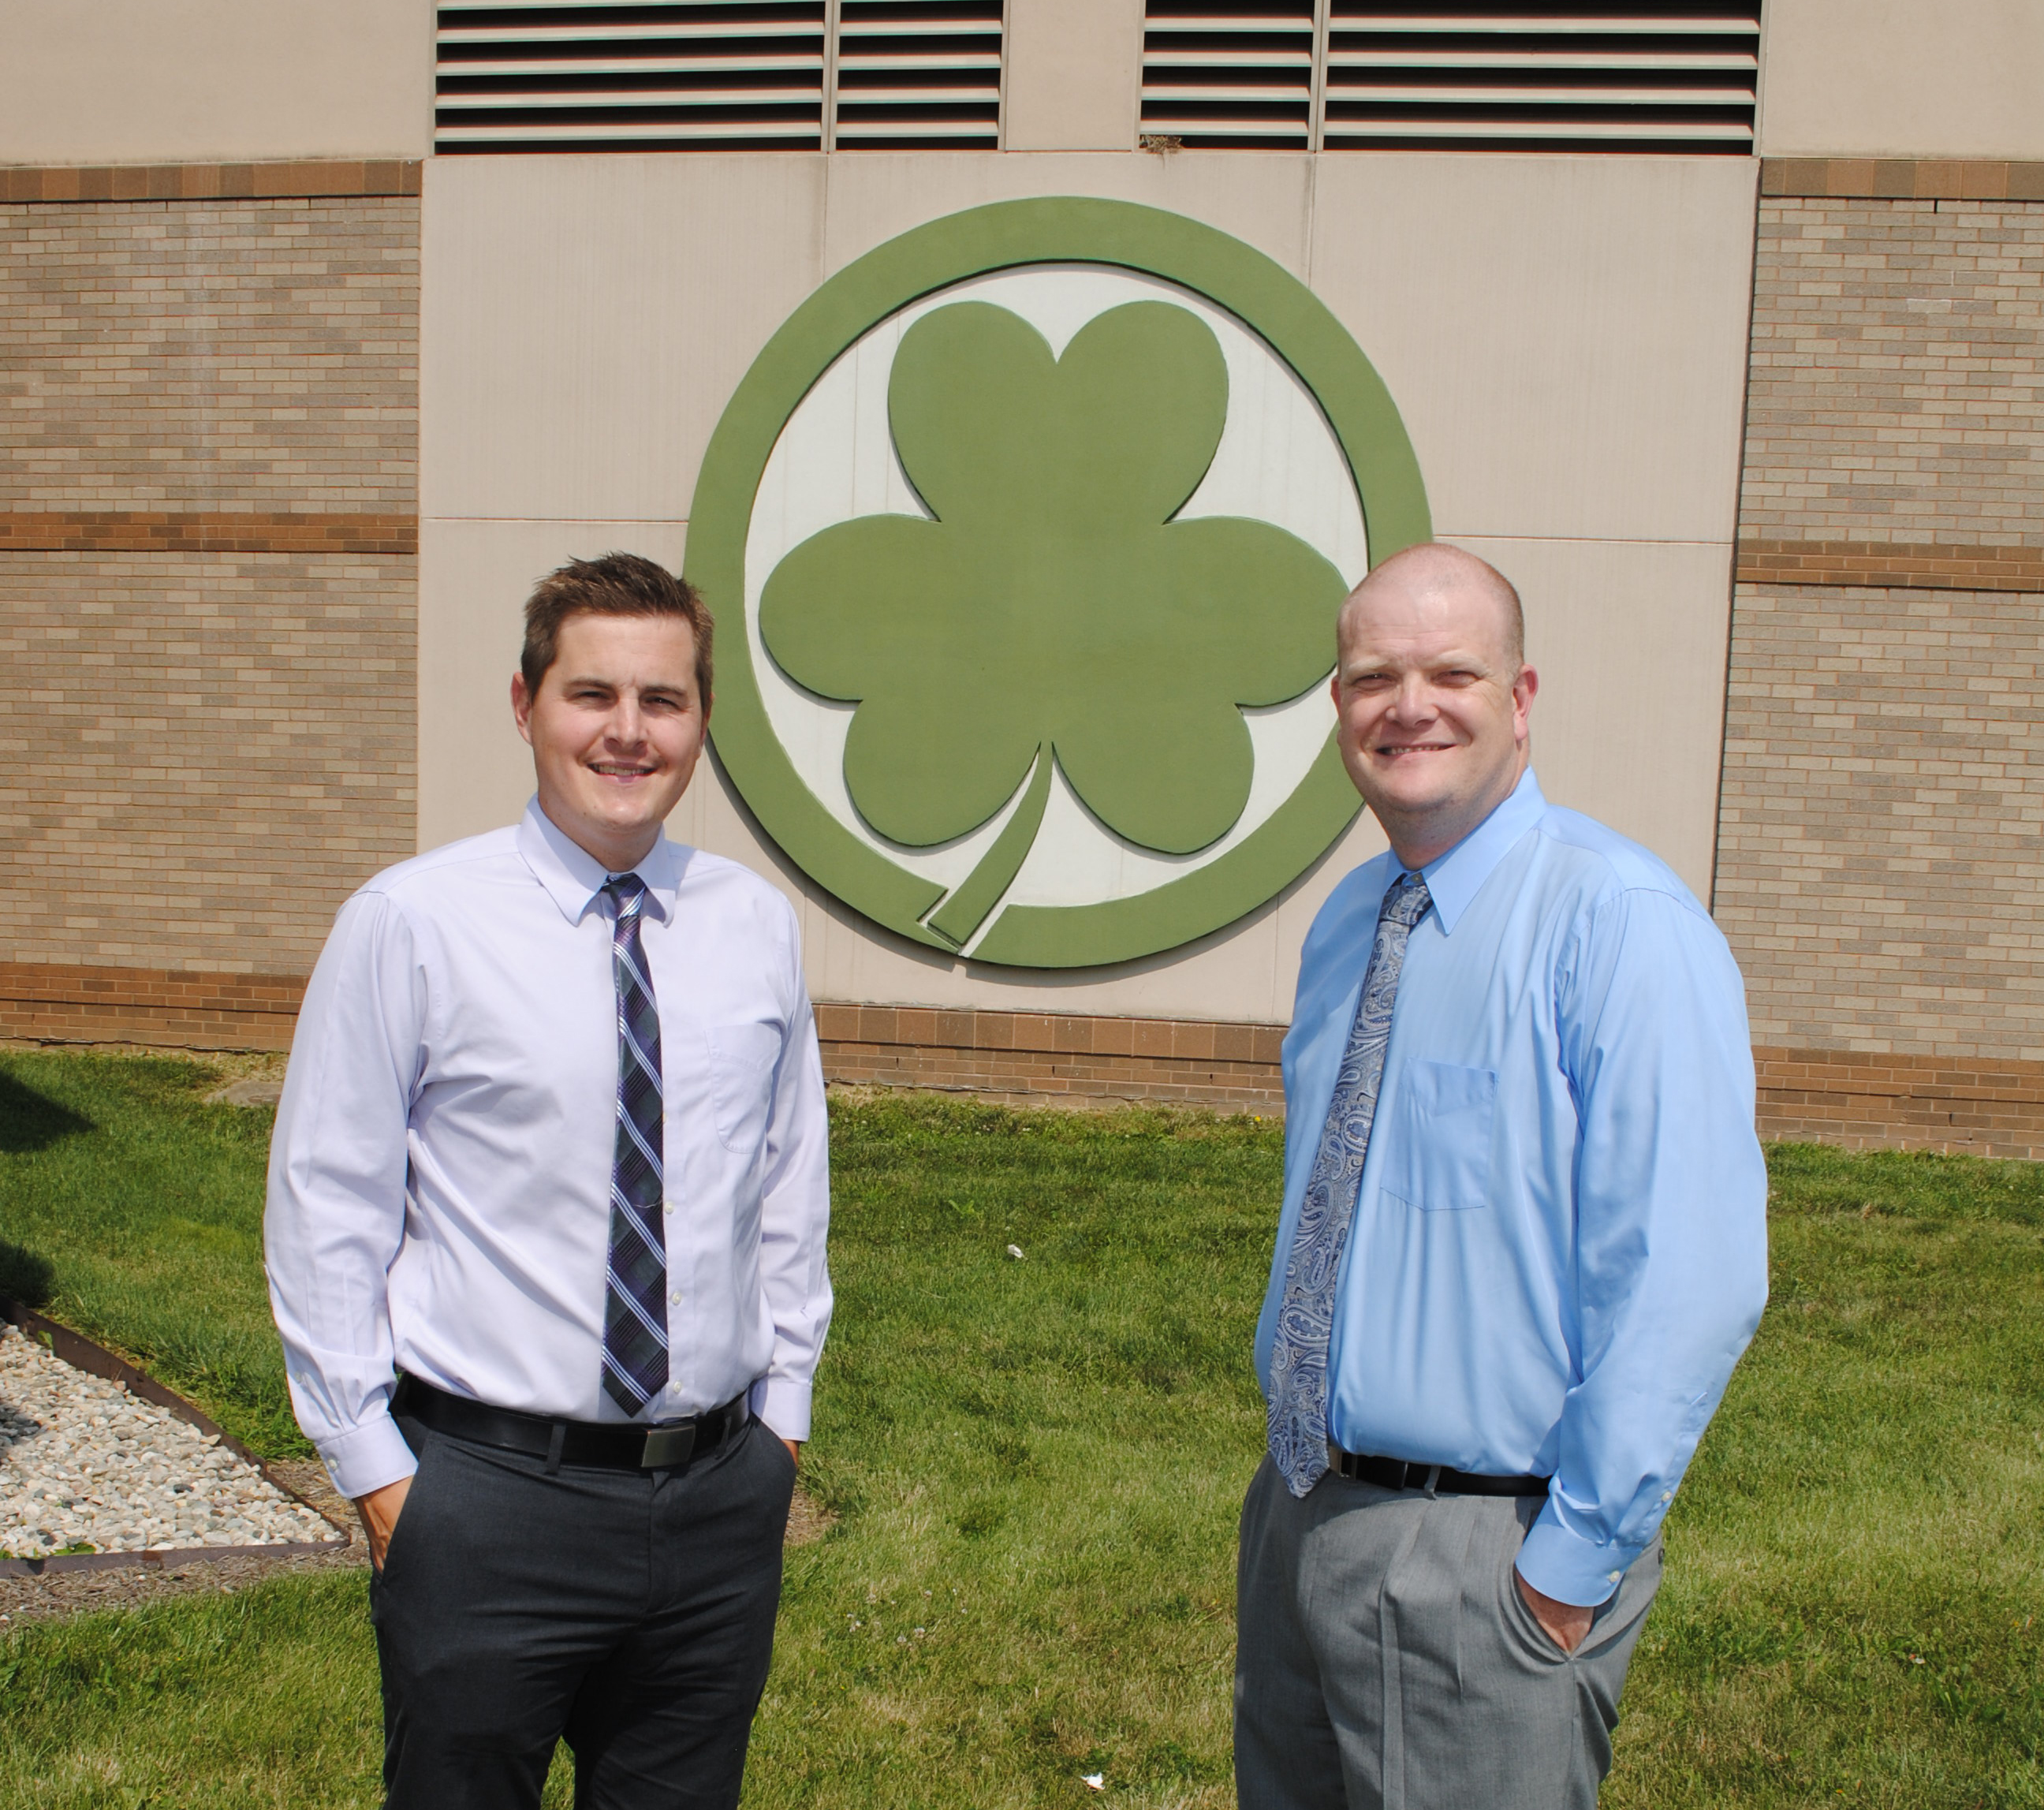 Ryan Haughey, left, and Corey Hartley have each taught and served as assistant principal at the middle and intermediate school respectively before being named principals this summer. (Photo by Robert Herrington)